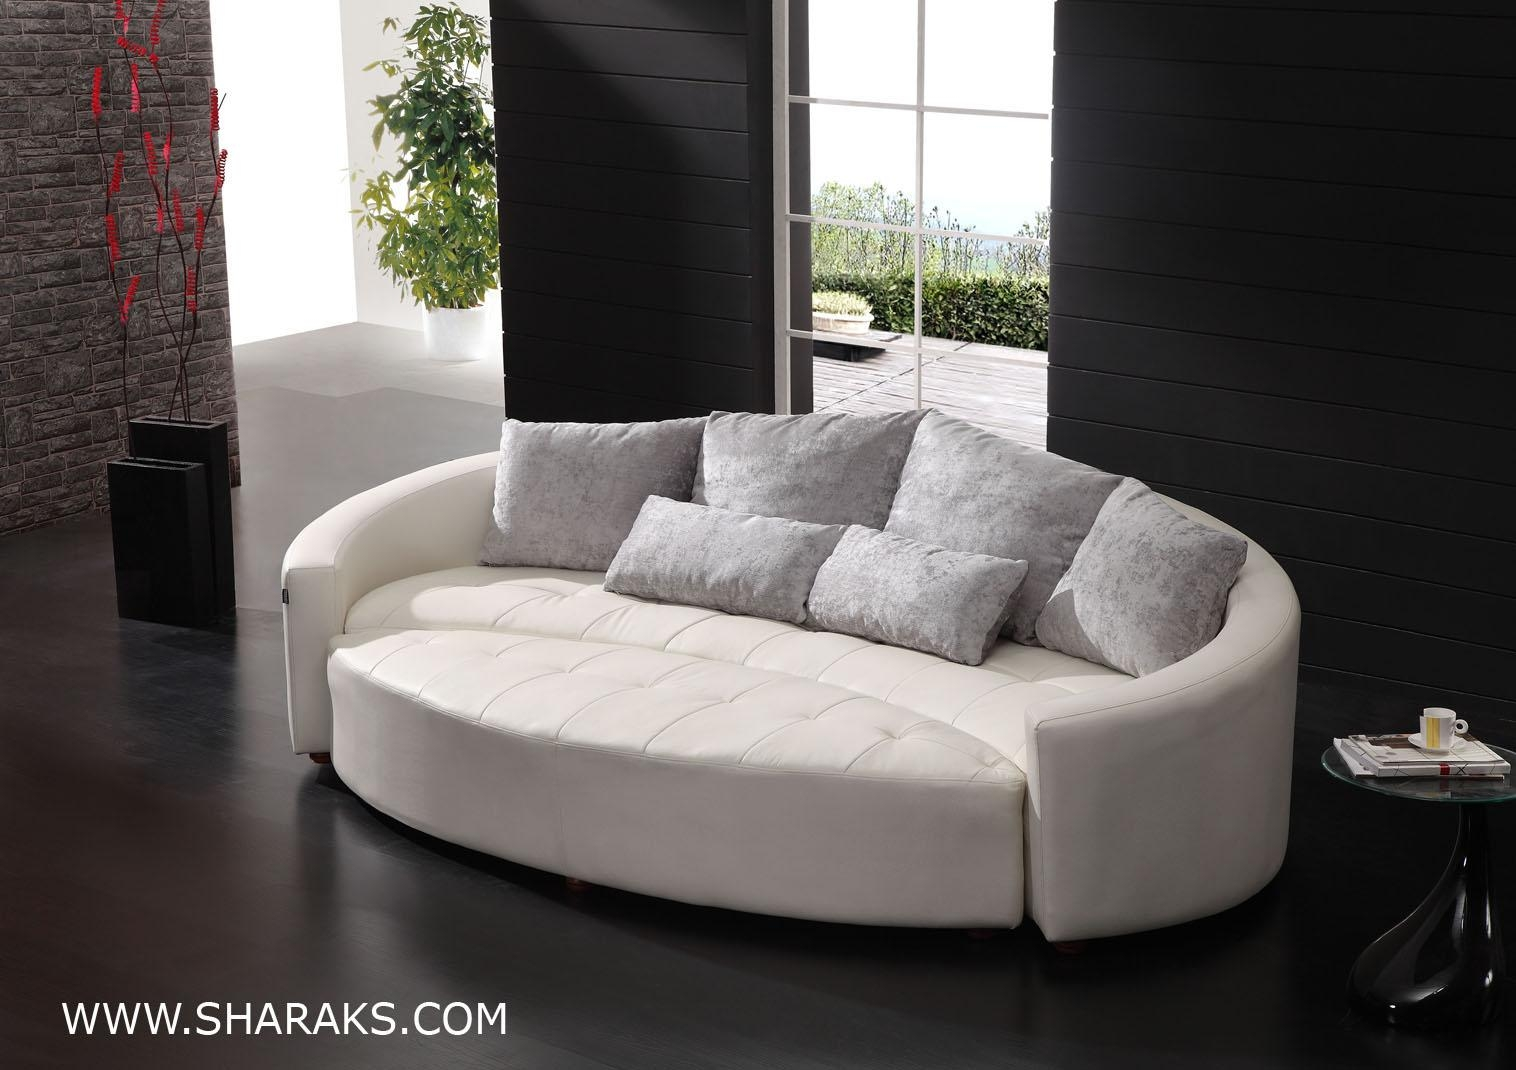 Curved Sofas For Bay Window | Livingroom & Bathroom For Sofas For Bay Window (Image 7 of 20)